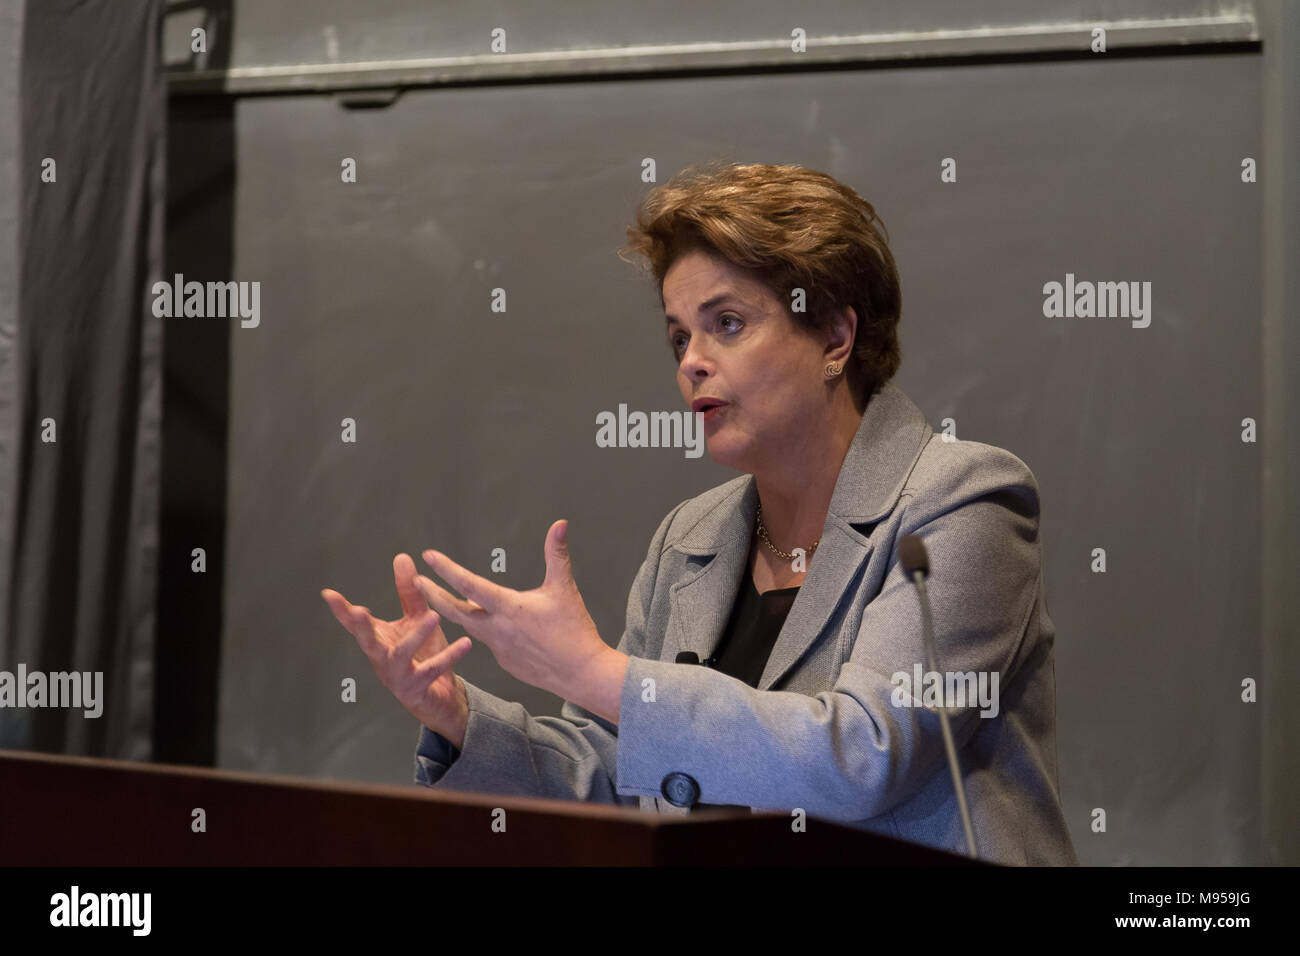 Princeton, NJ, USA, April 13, 2017. Former Brazilian President Dilma Rousseff delivering a conference at Princeton University - Stock Image